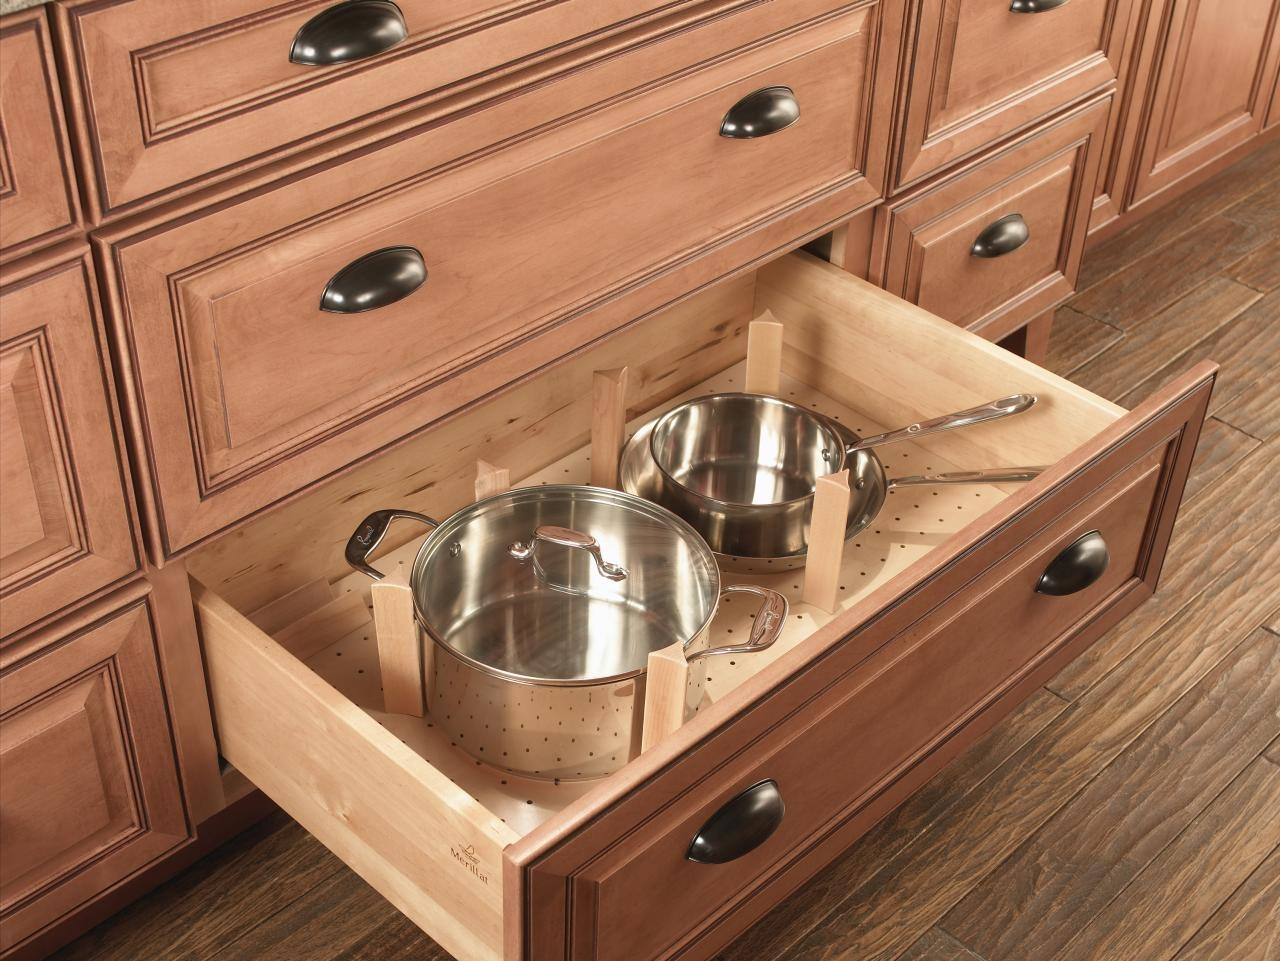 Best Wood For Kitchen Cabinet Drawers